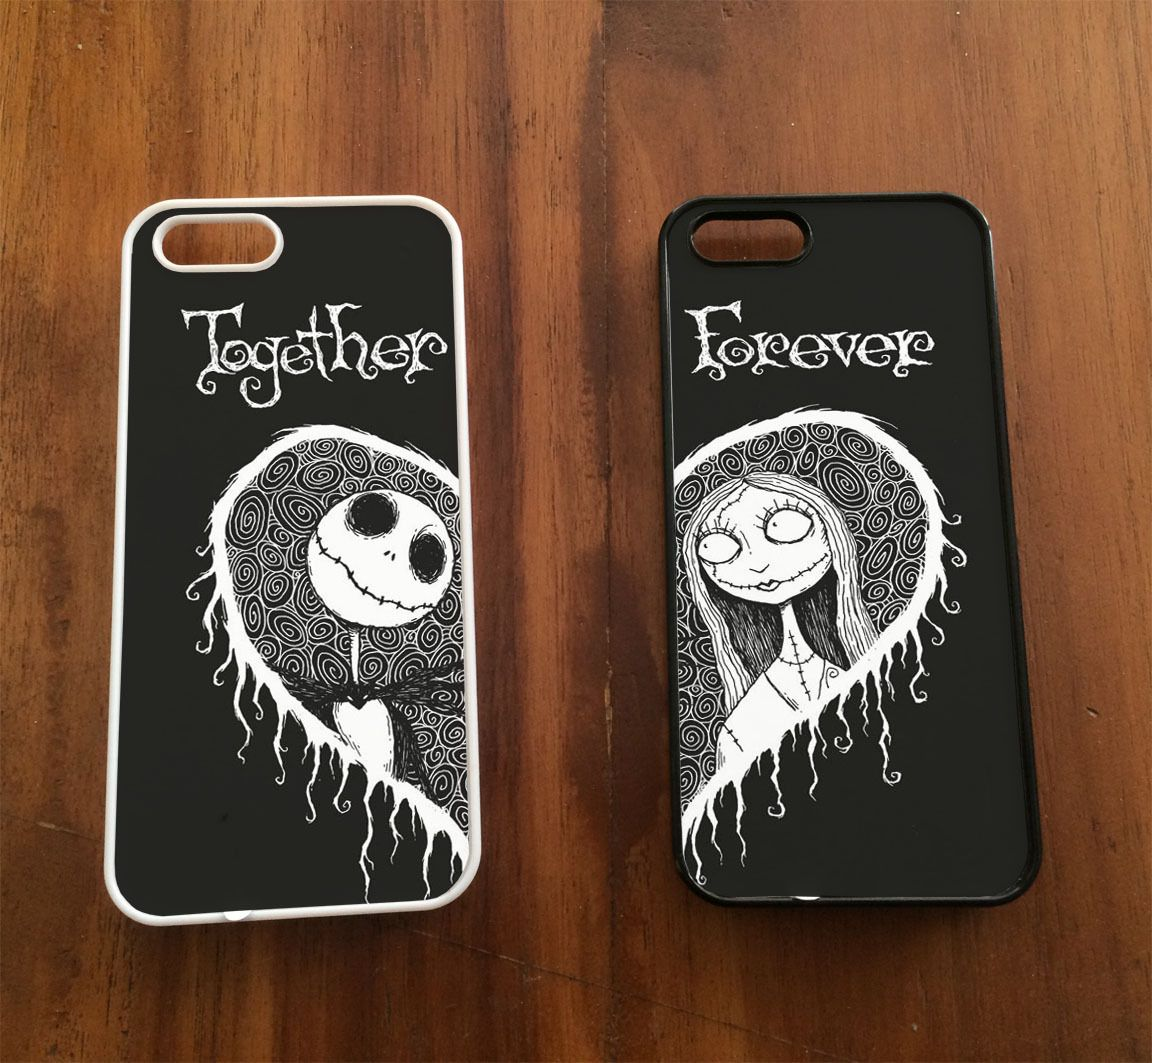 promo code 217ee 9563d Jack and Sally Together Forever Couple Cases   iPhone 4/4S, iPhone 5 ...